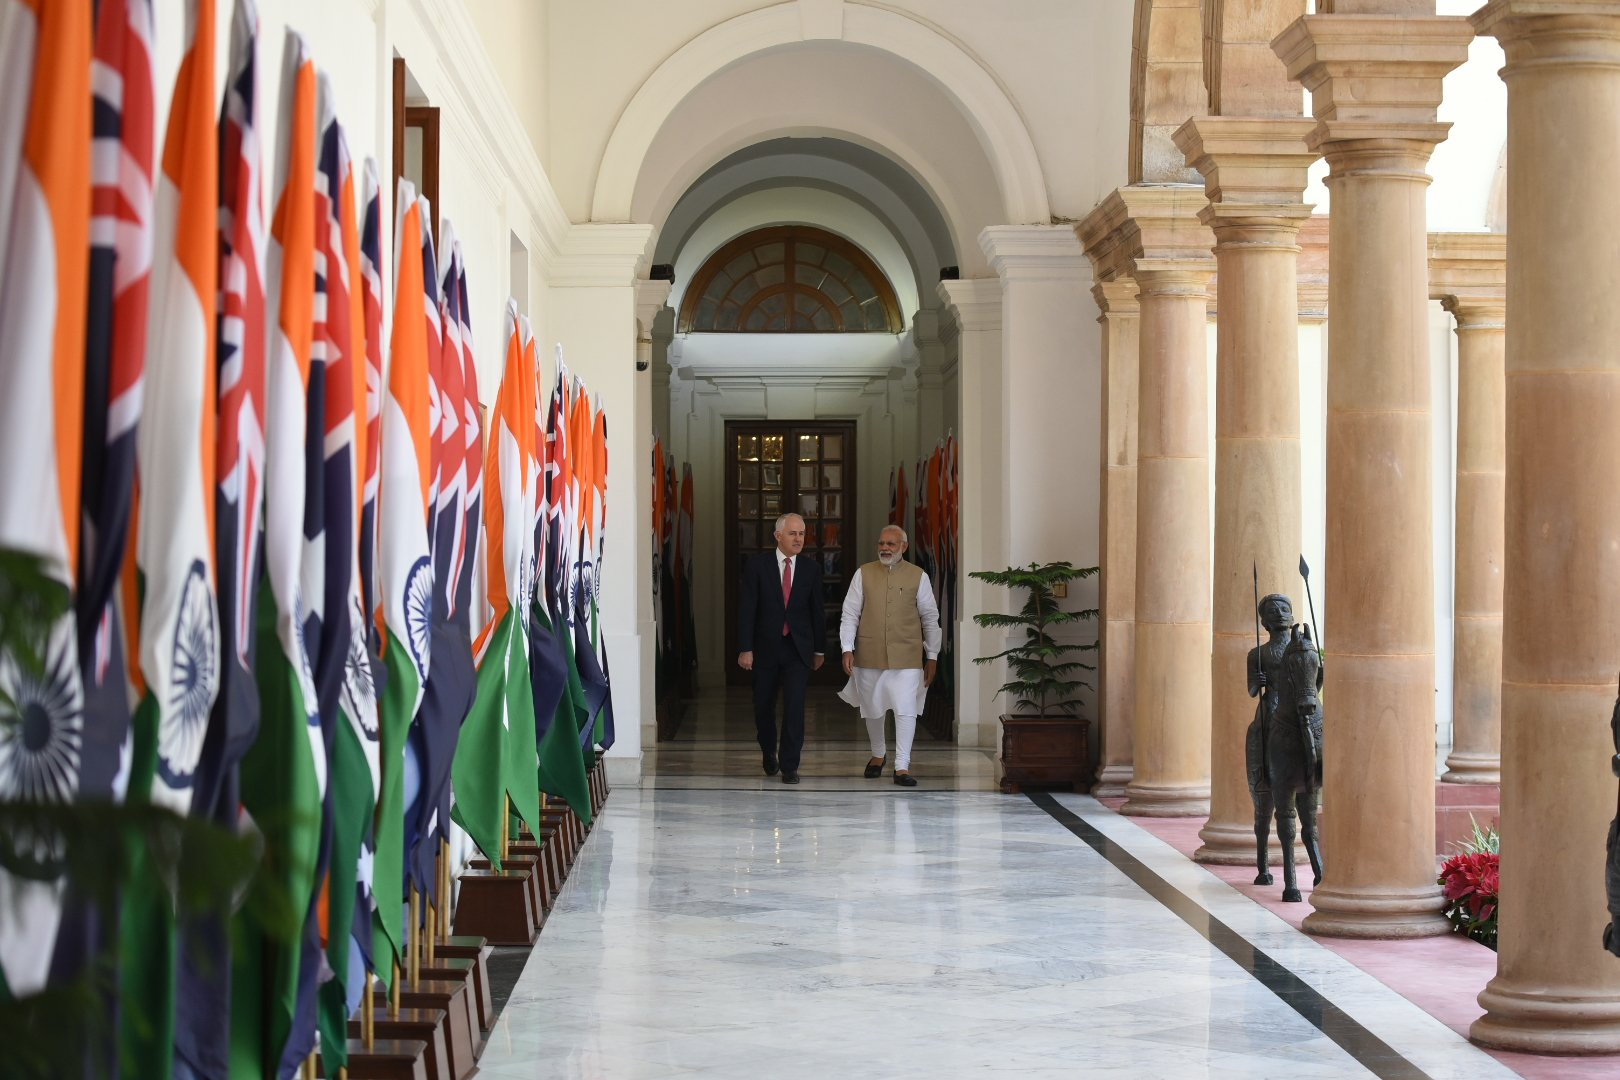 Pmo India On Twitter Cementing Ties With Australia Prime Minister Narendramodi And Turnbullmalcolm Hold Talks Https T Co Esoxeze71g